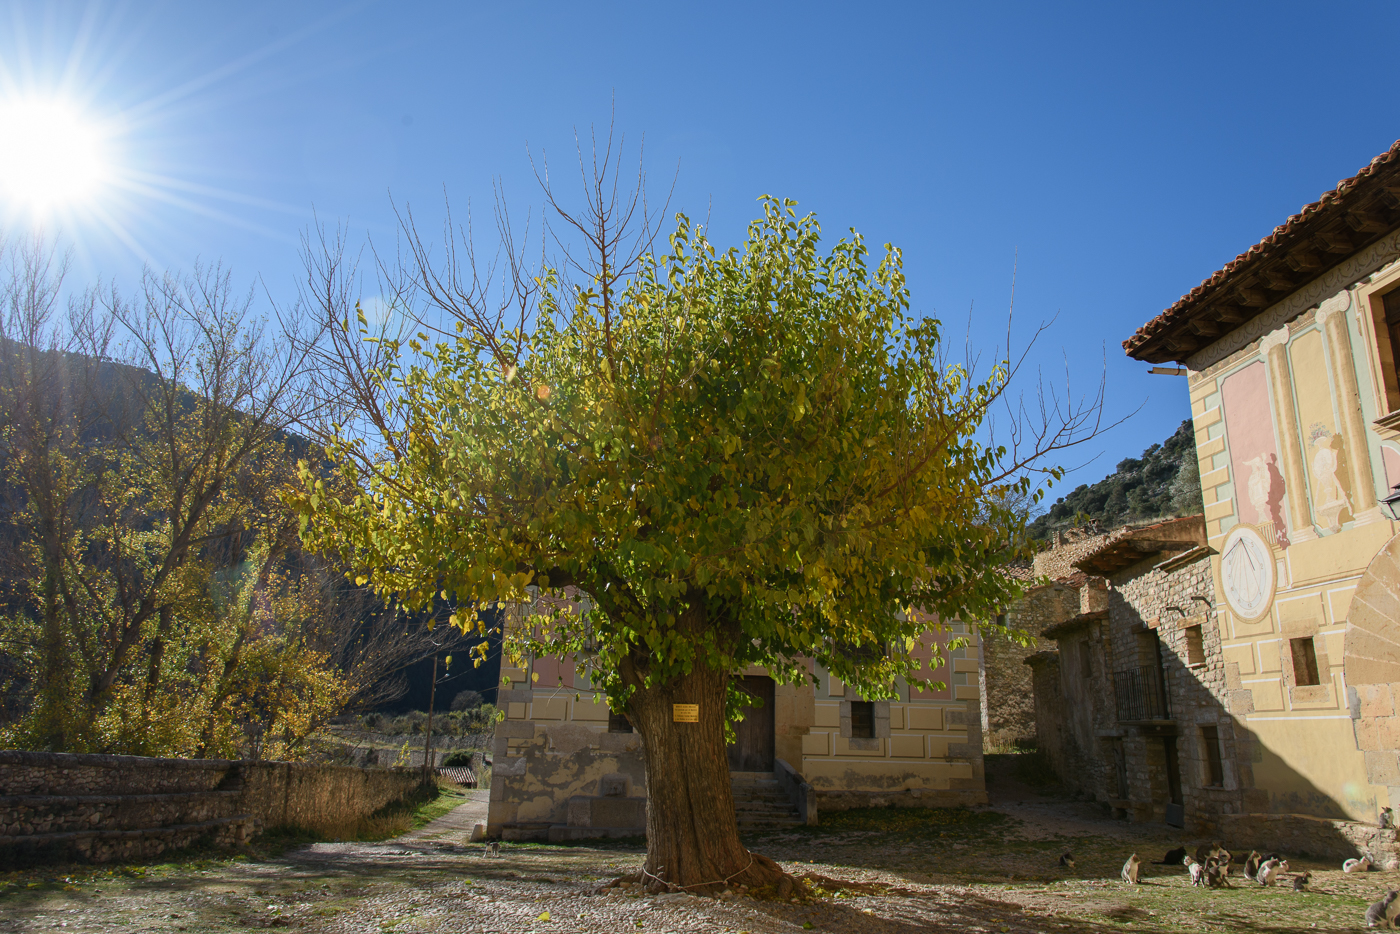 AN ancient tree in La Estrella